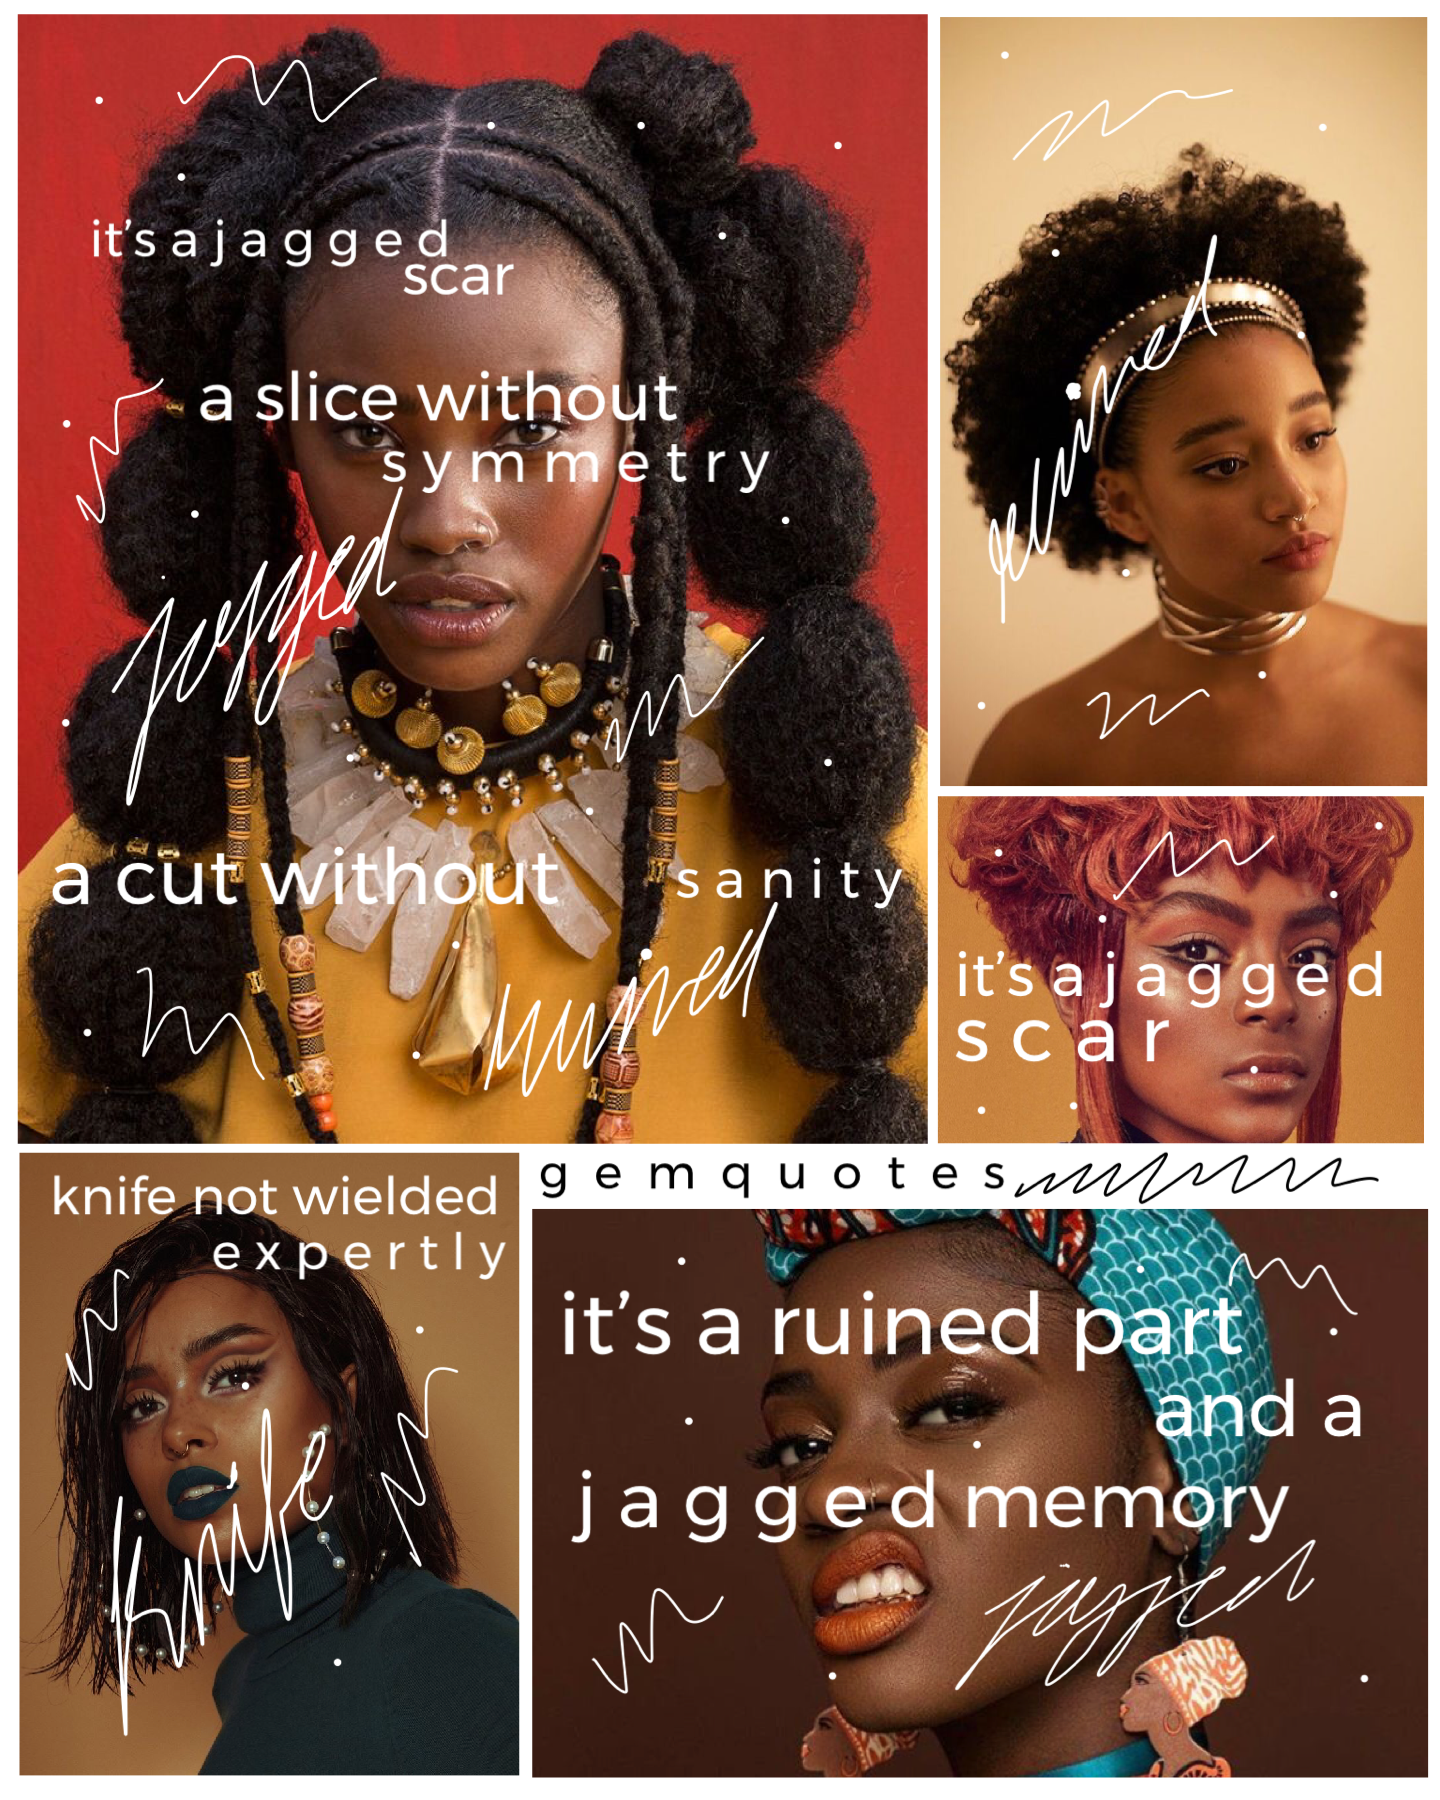 """""""🤍tap🤍"""" Poem by me :) The #blm movement has elicited some really great responses, but sadly there's still injustice with Brianna Taylor's murderers, several other unsolved cases. So sending hope~~🖤"""